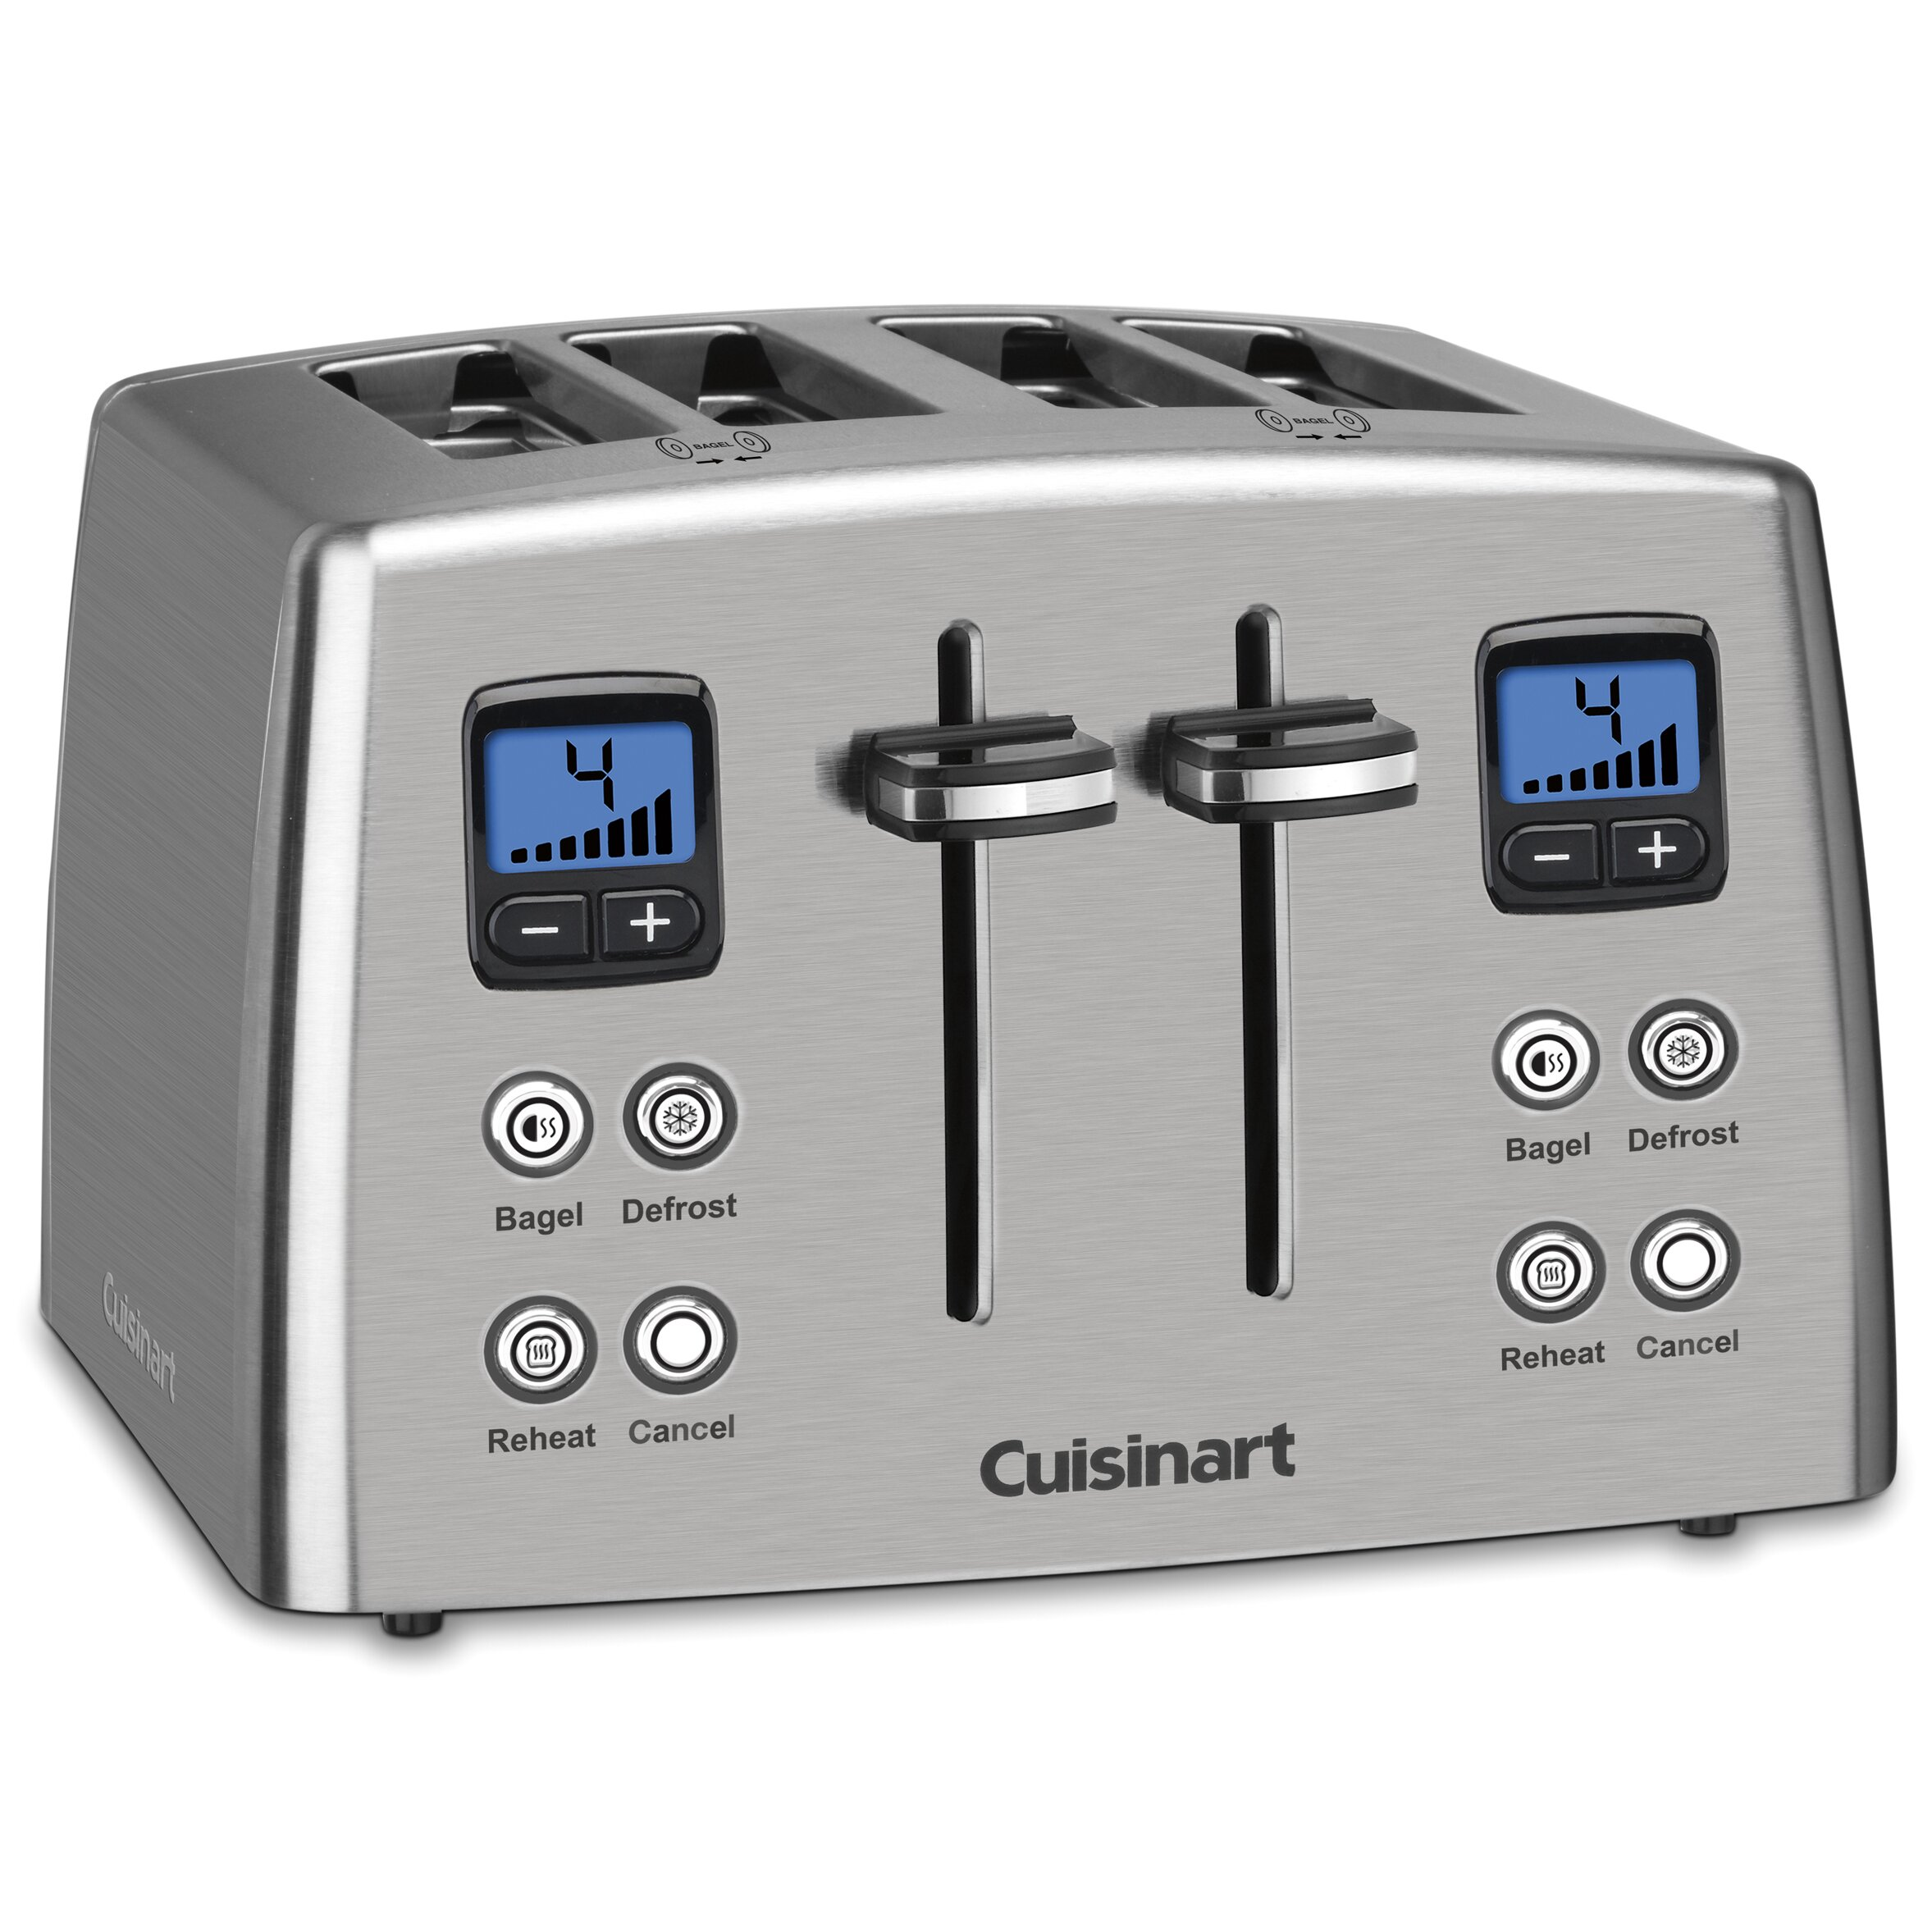 Cuisinart Classic Series 4 Slice Compact Toaster Amp Reviews